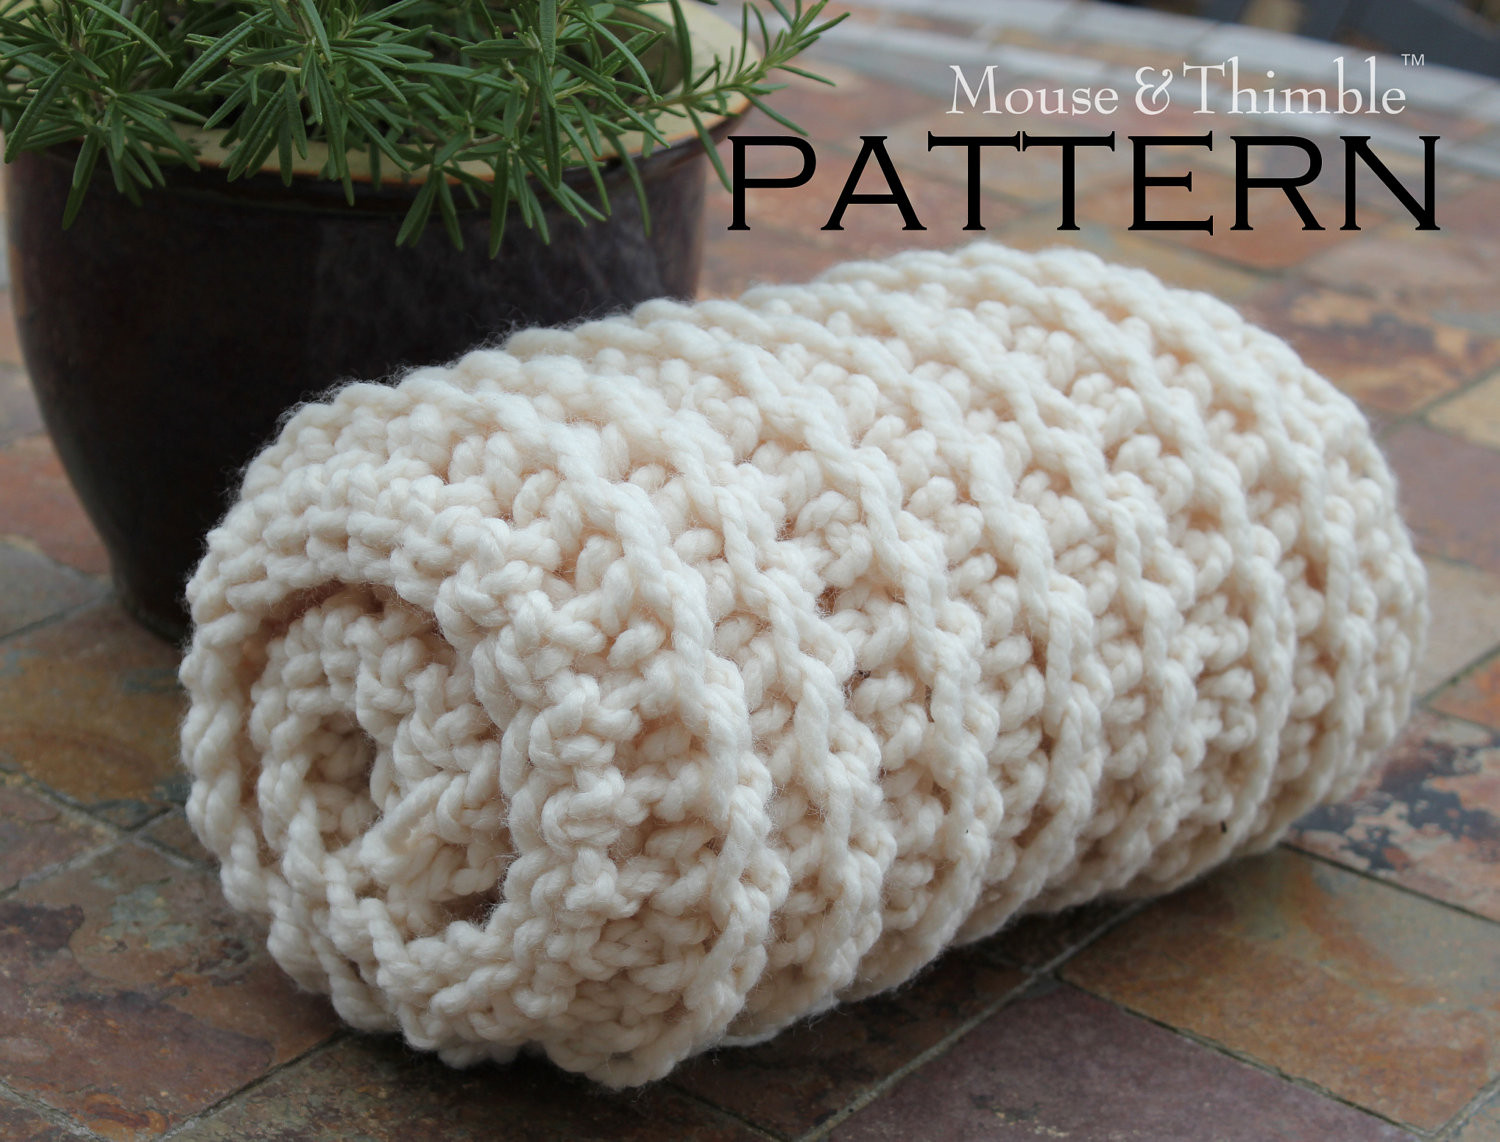 Chunky Crochet Blanket New Chunky Fisherman Style Baby Blanket Crochet Pattern 25 Of Awesome 44 Photos Chunky Crochet Blanket